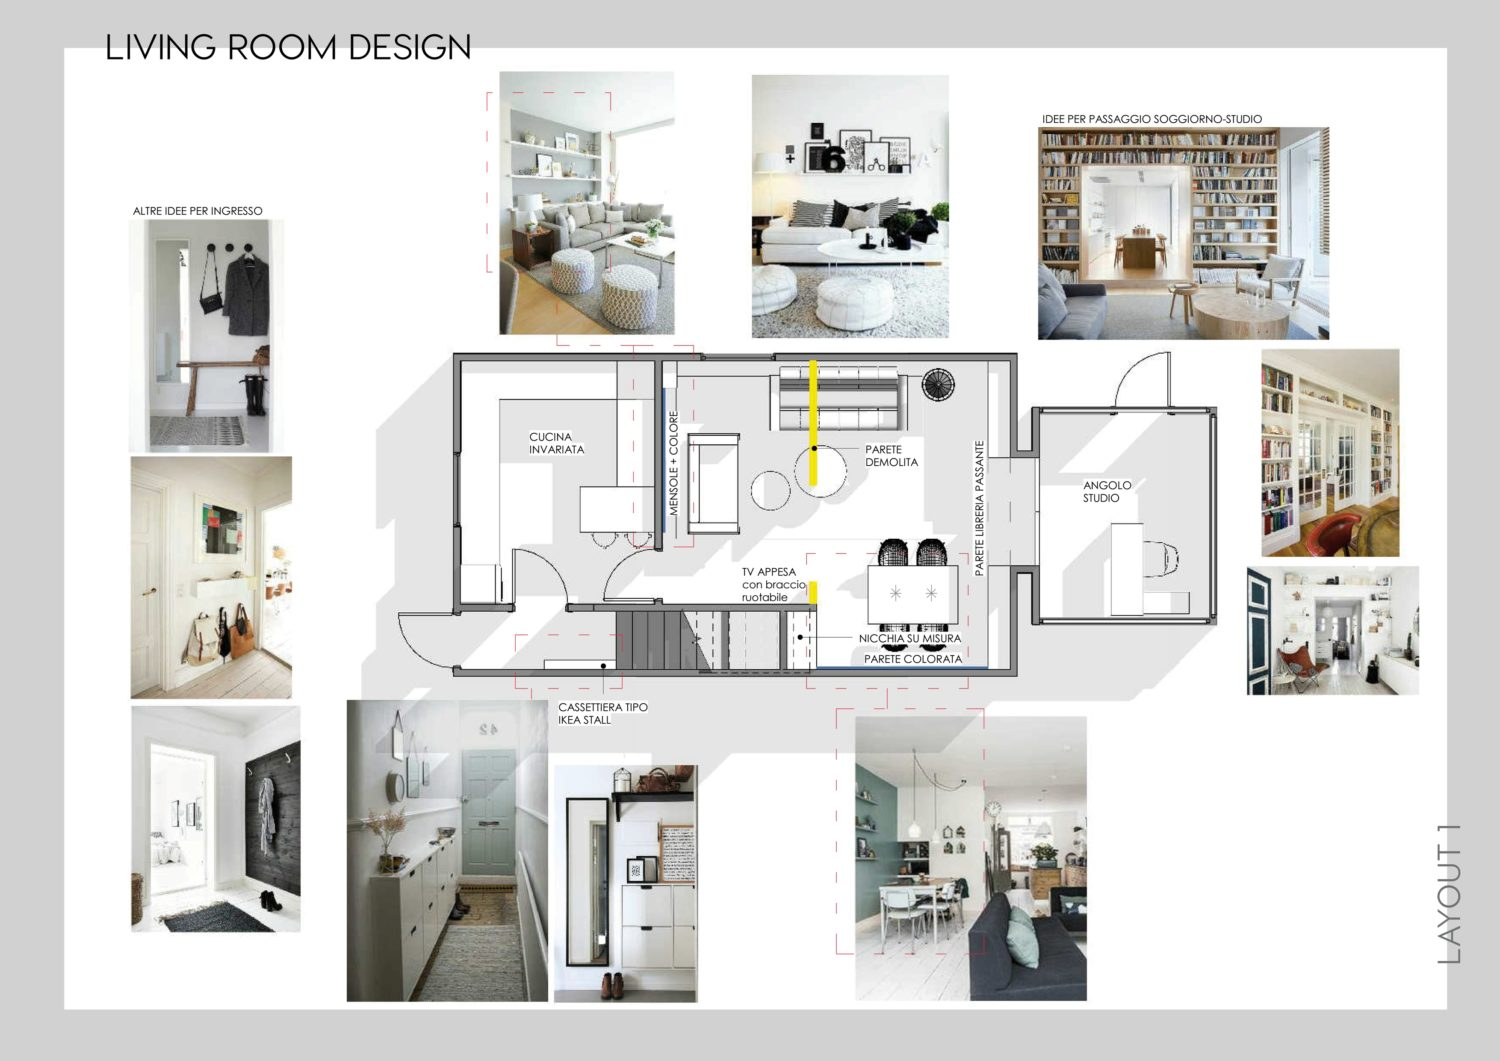 Online interior design uk Home interior design courses online